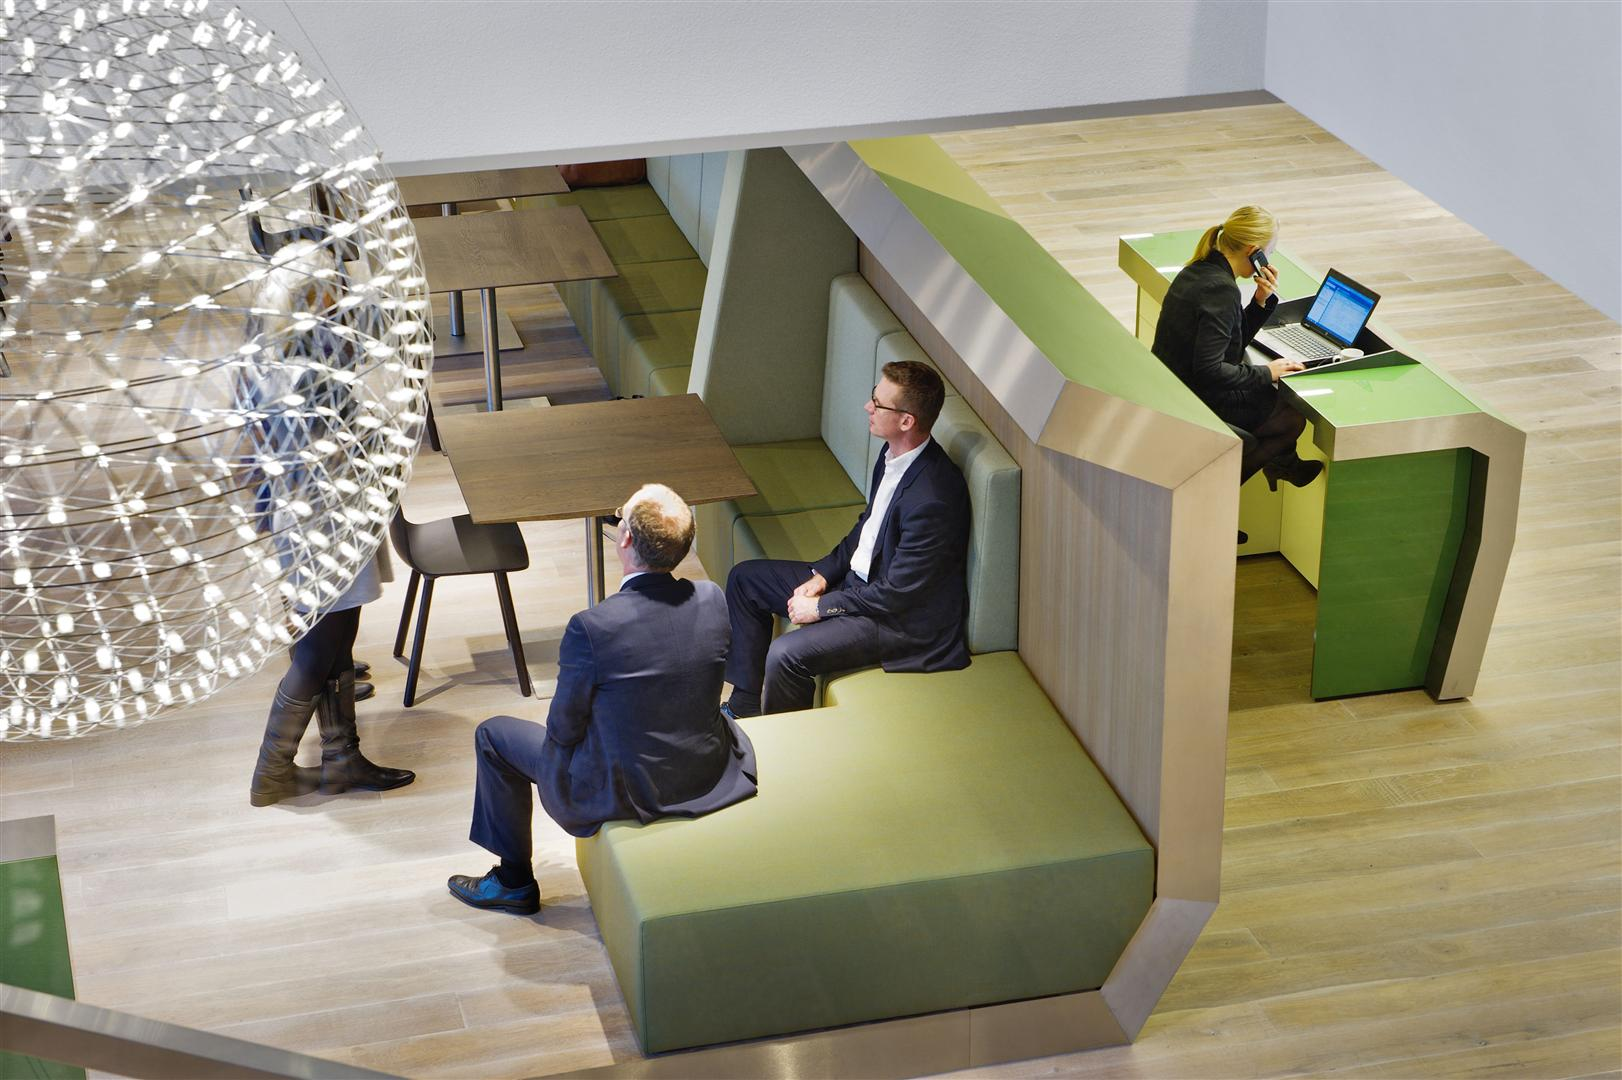 CBRE - Case Study - CBRE HQ The Netherlands - Symphony Offices, Zuidas, Amsterdam - Interior 11